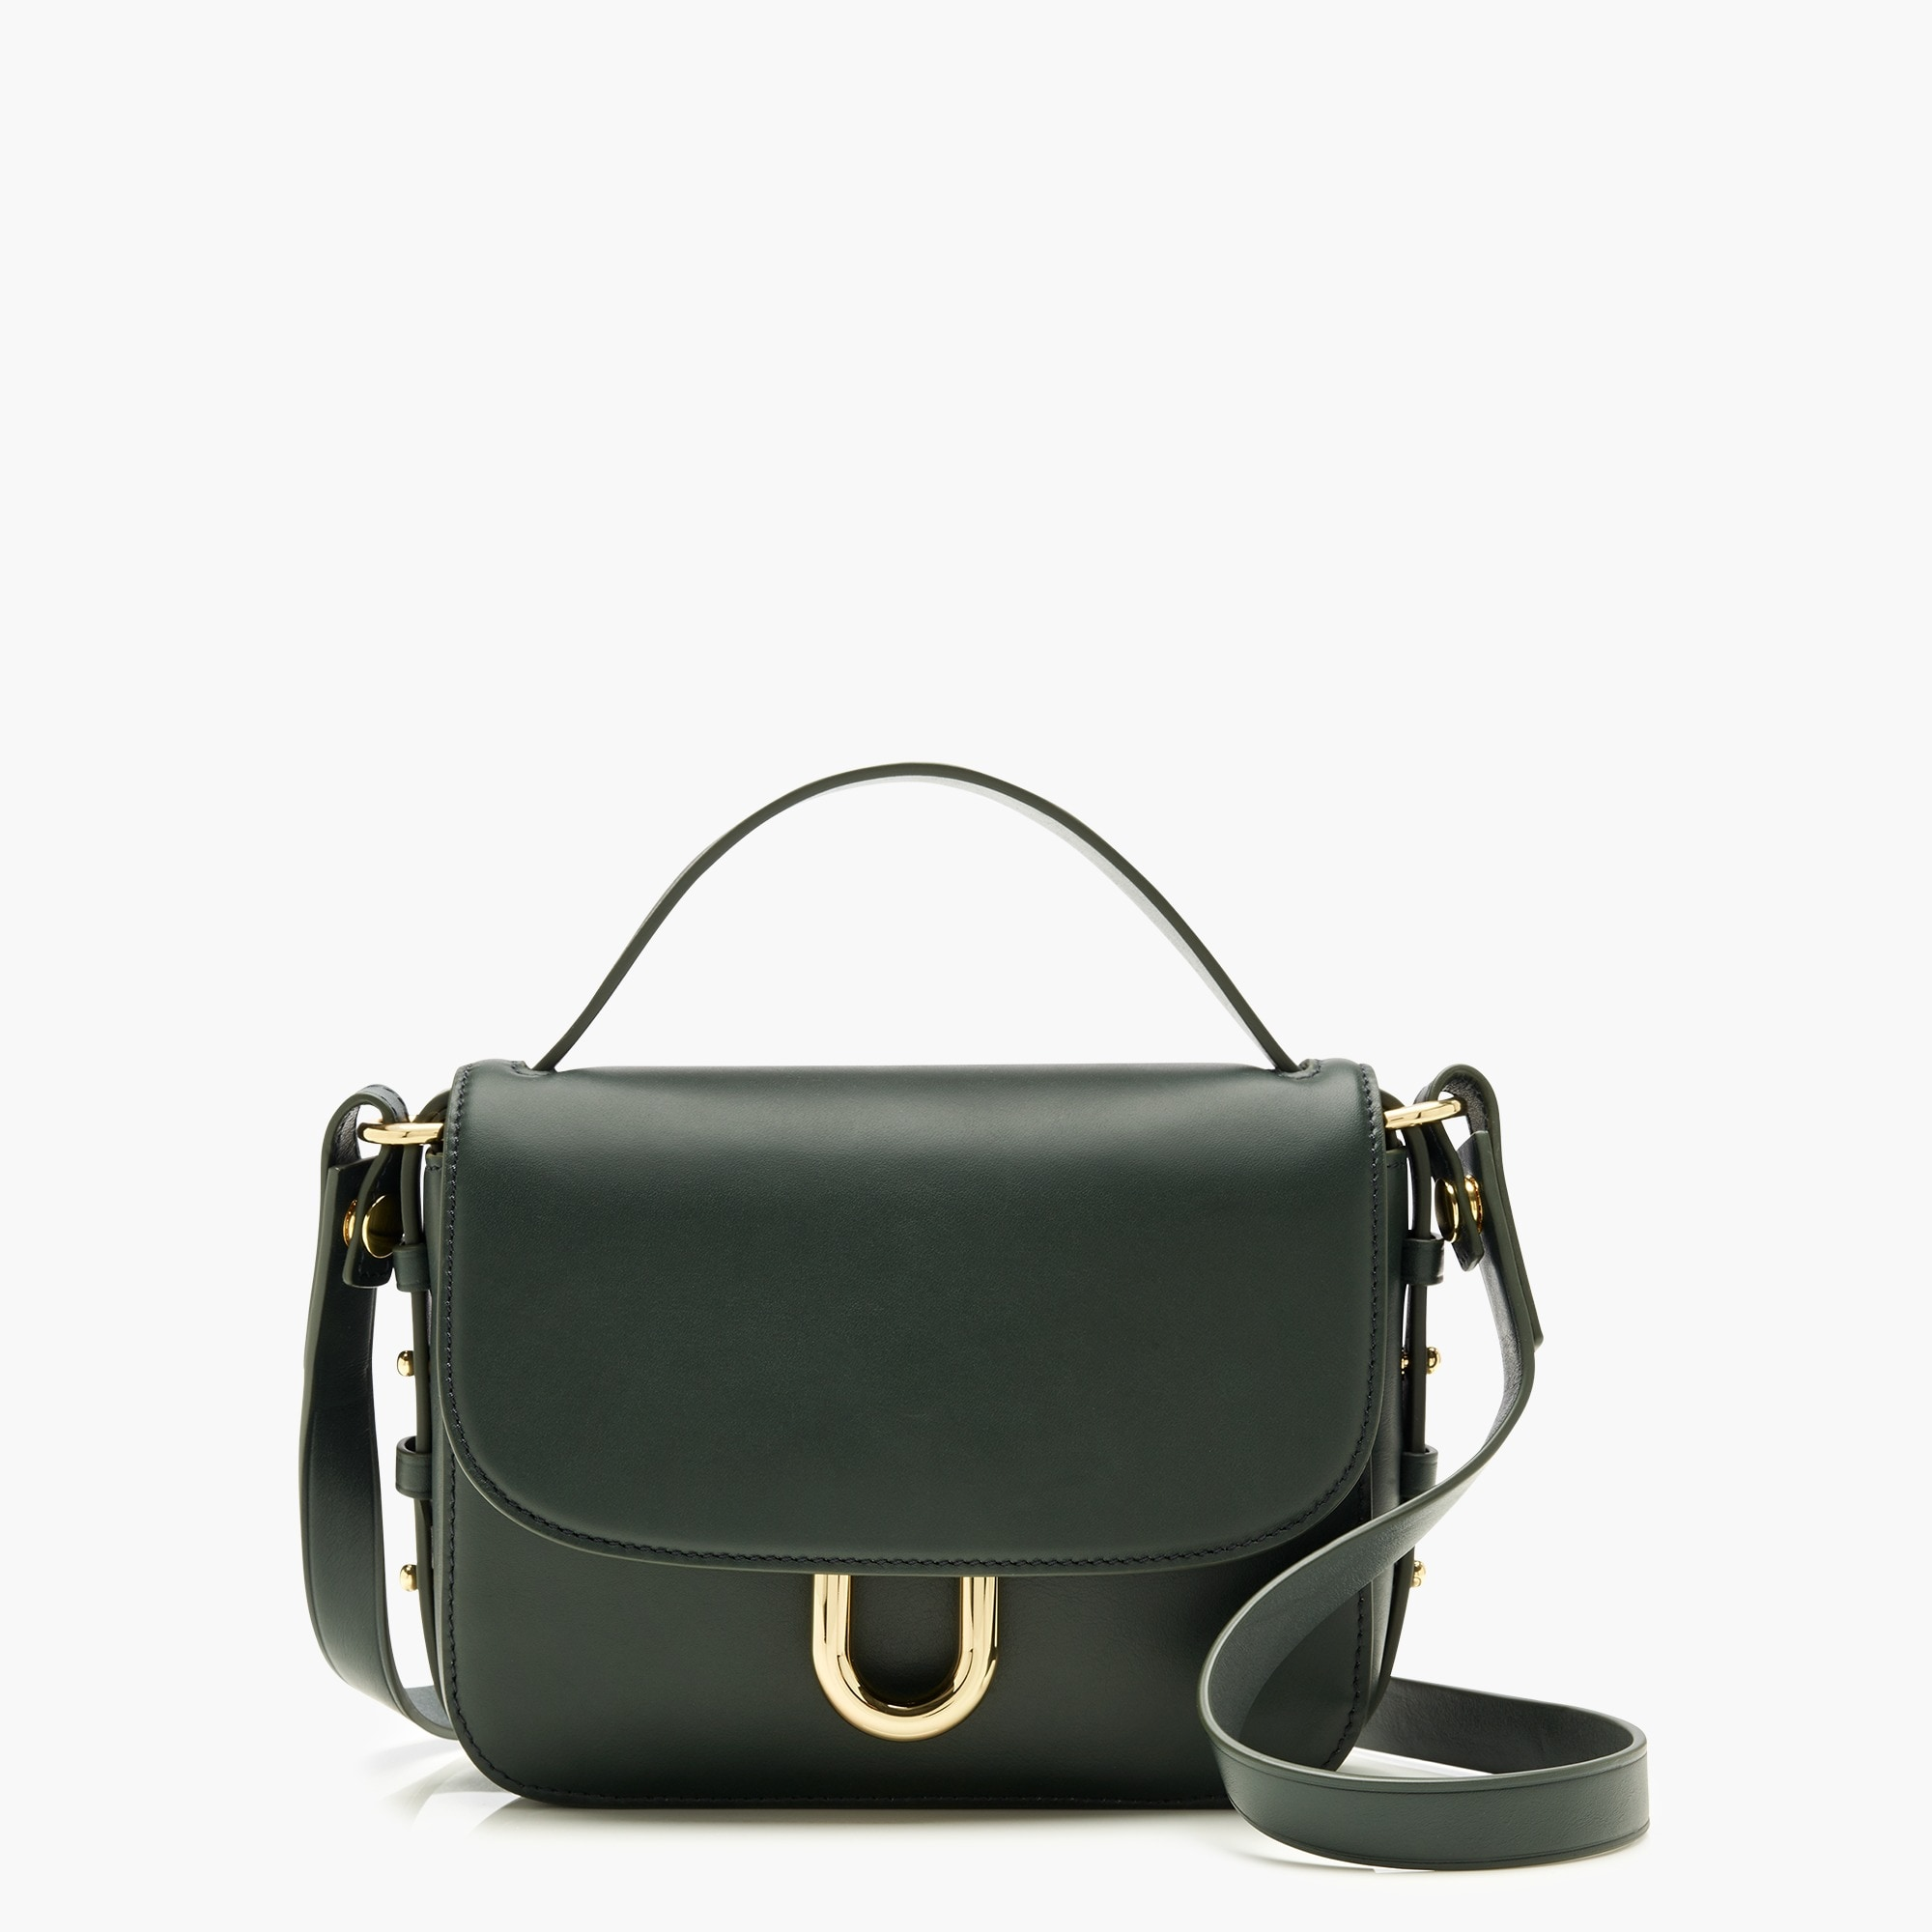 womens Harper crossbody bag in Italian leather